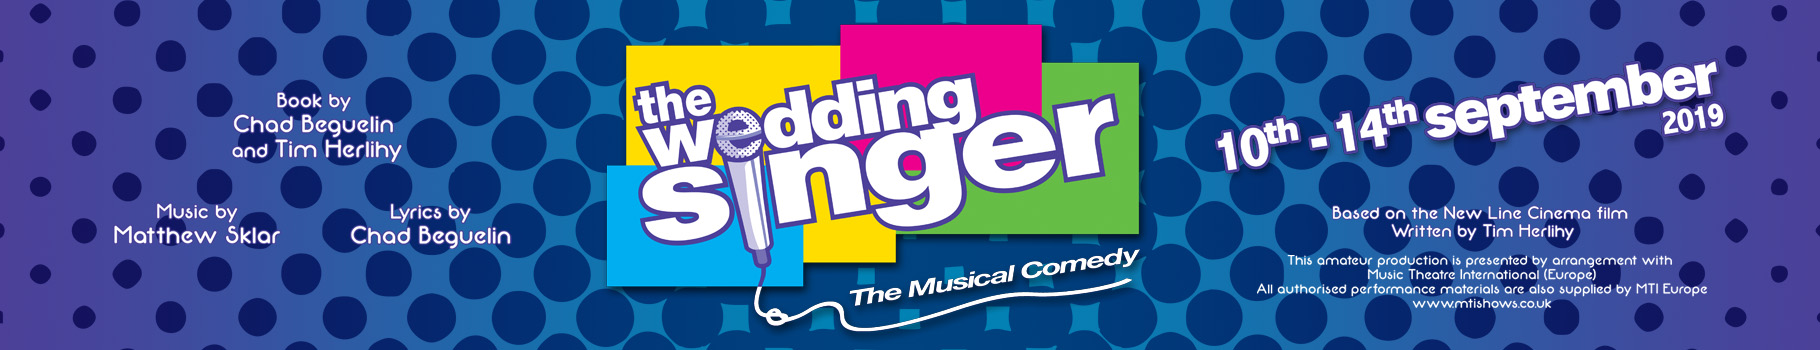 19-09 The Wedding Singer LAOS Web Banner2